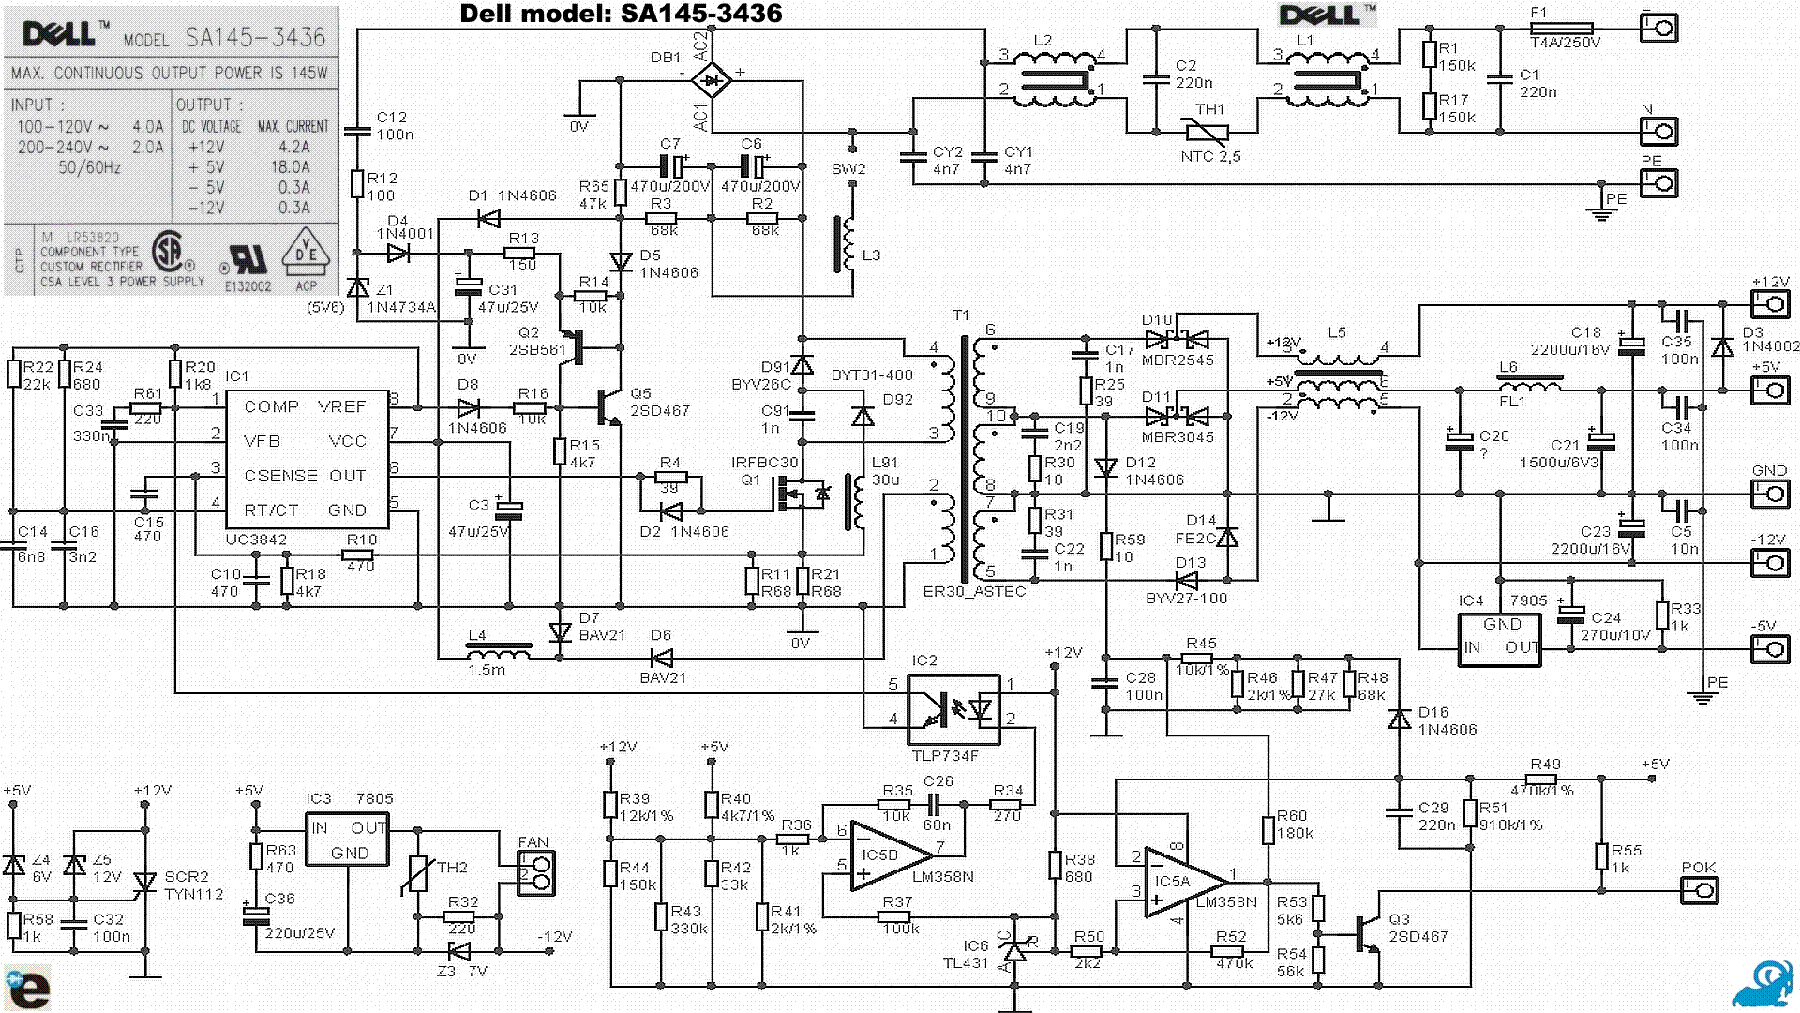 power supply power supply schematic dell computer power supply wiring diagram